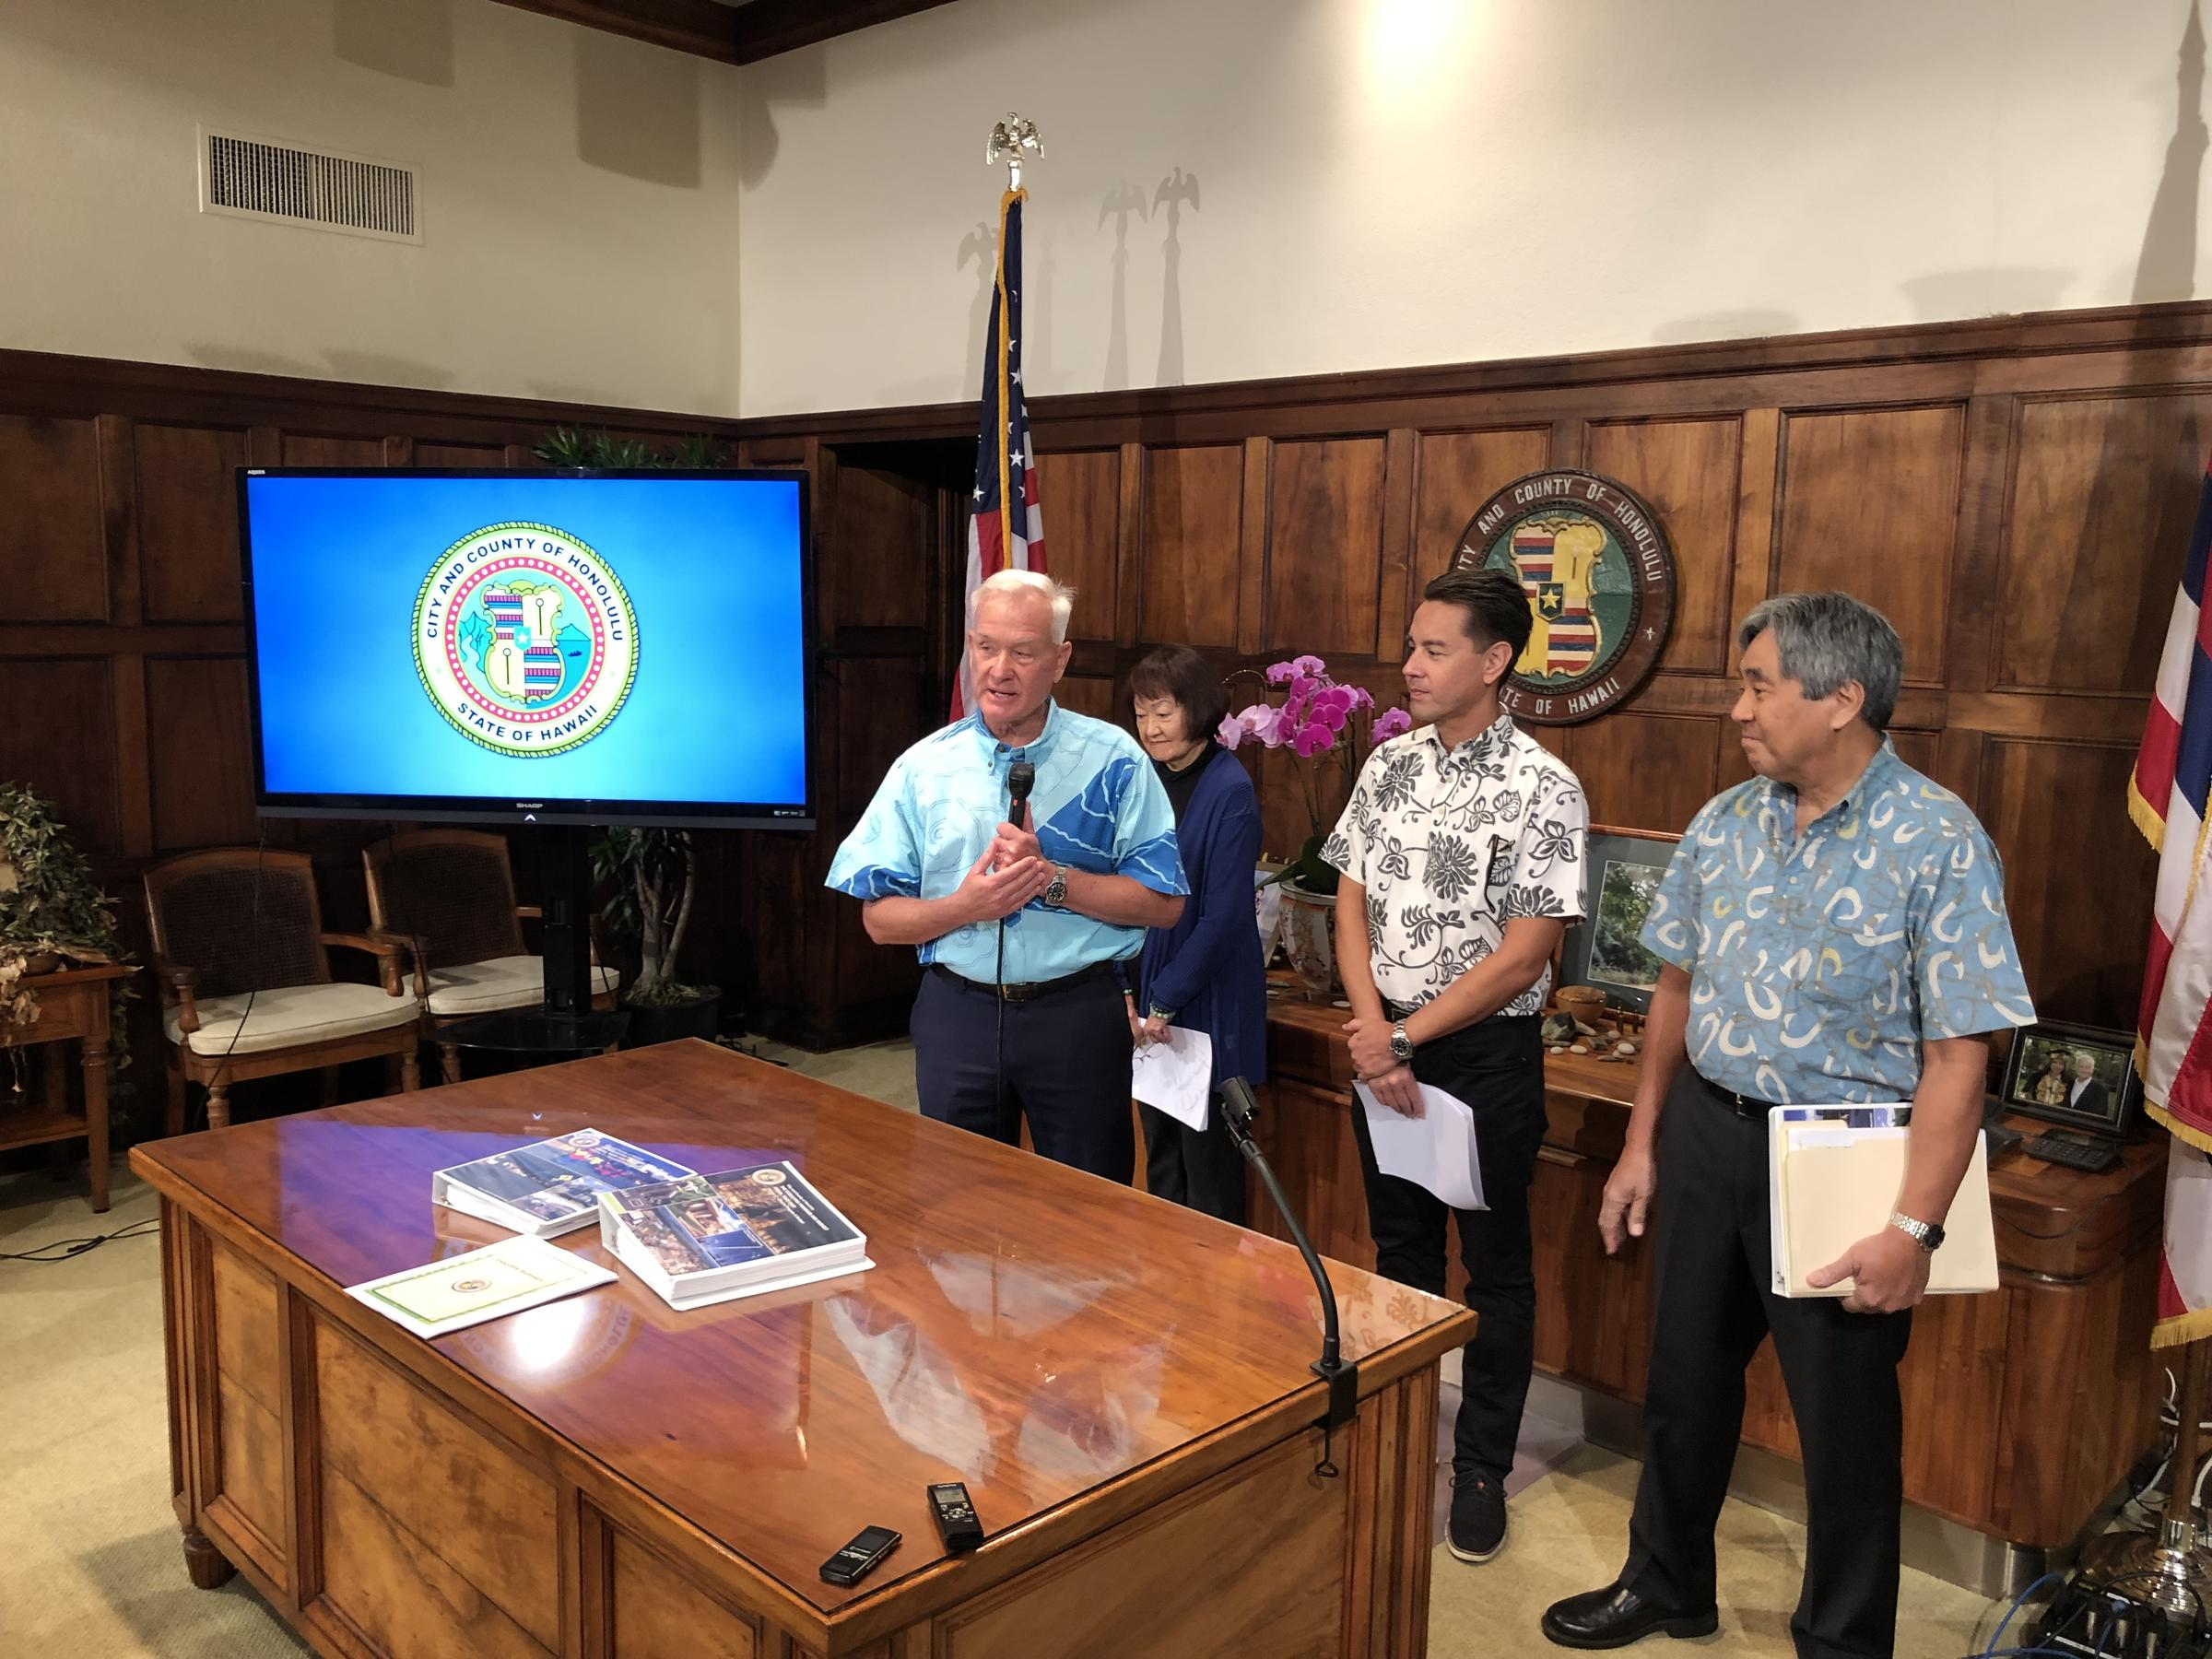 Honolulu Mayor Rolls Out Proposed 2020 Spending Plan Hawaii Public Radio In 1850, kamehameha iii proclaimed honolulu the capital city of the independent. honolulu mayor rolls out proposed 2020